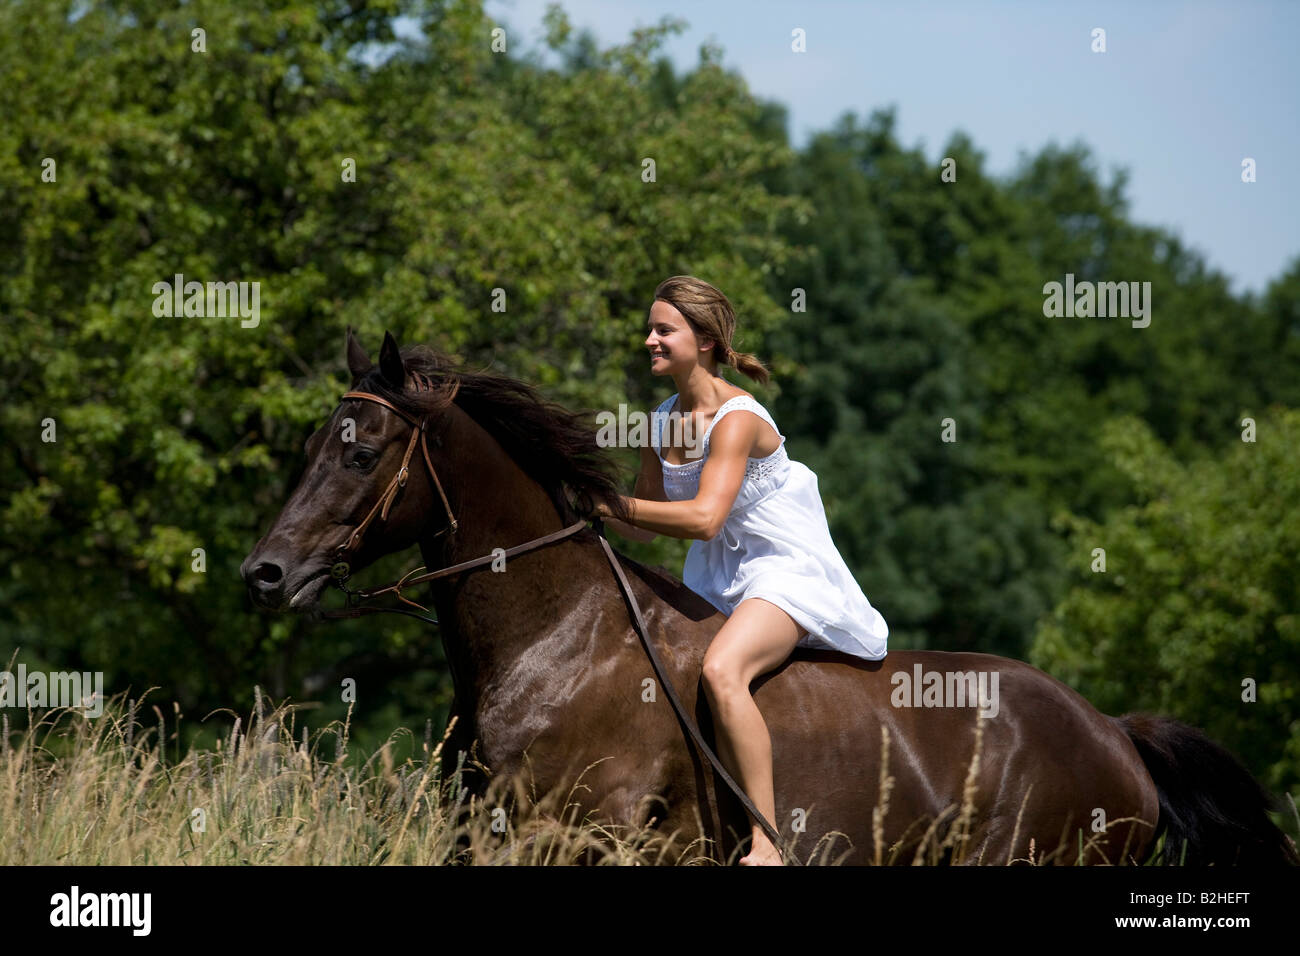 Young Woman In Summer Dress Riding Horse Stock Photo Alamy